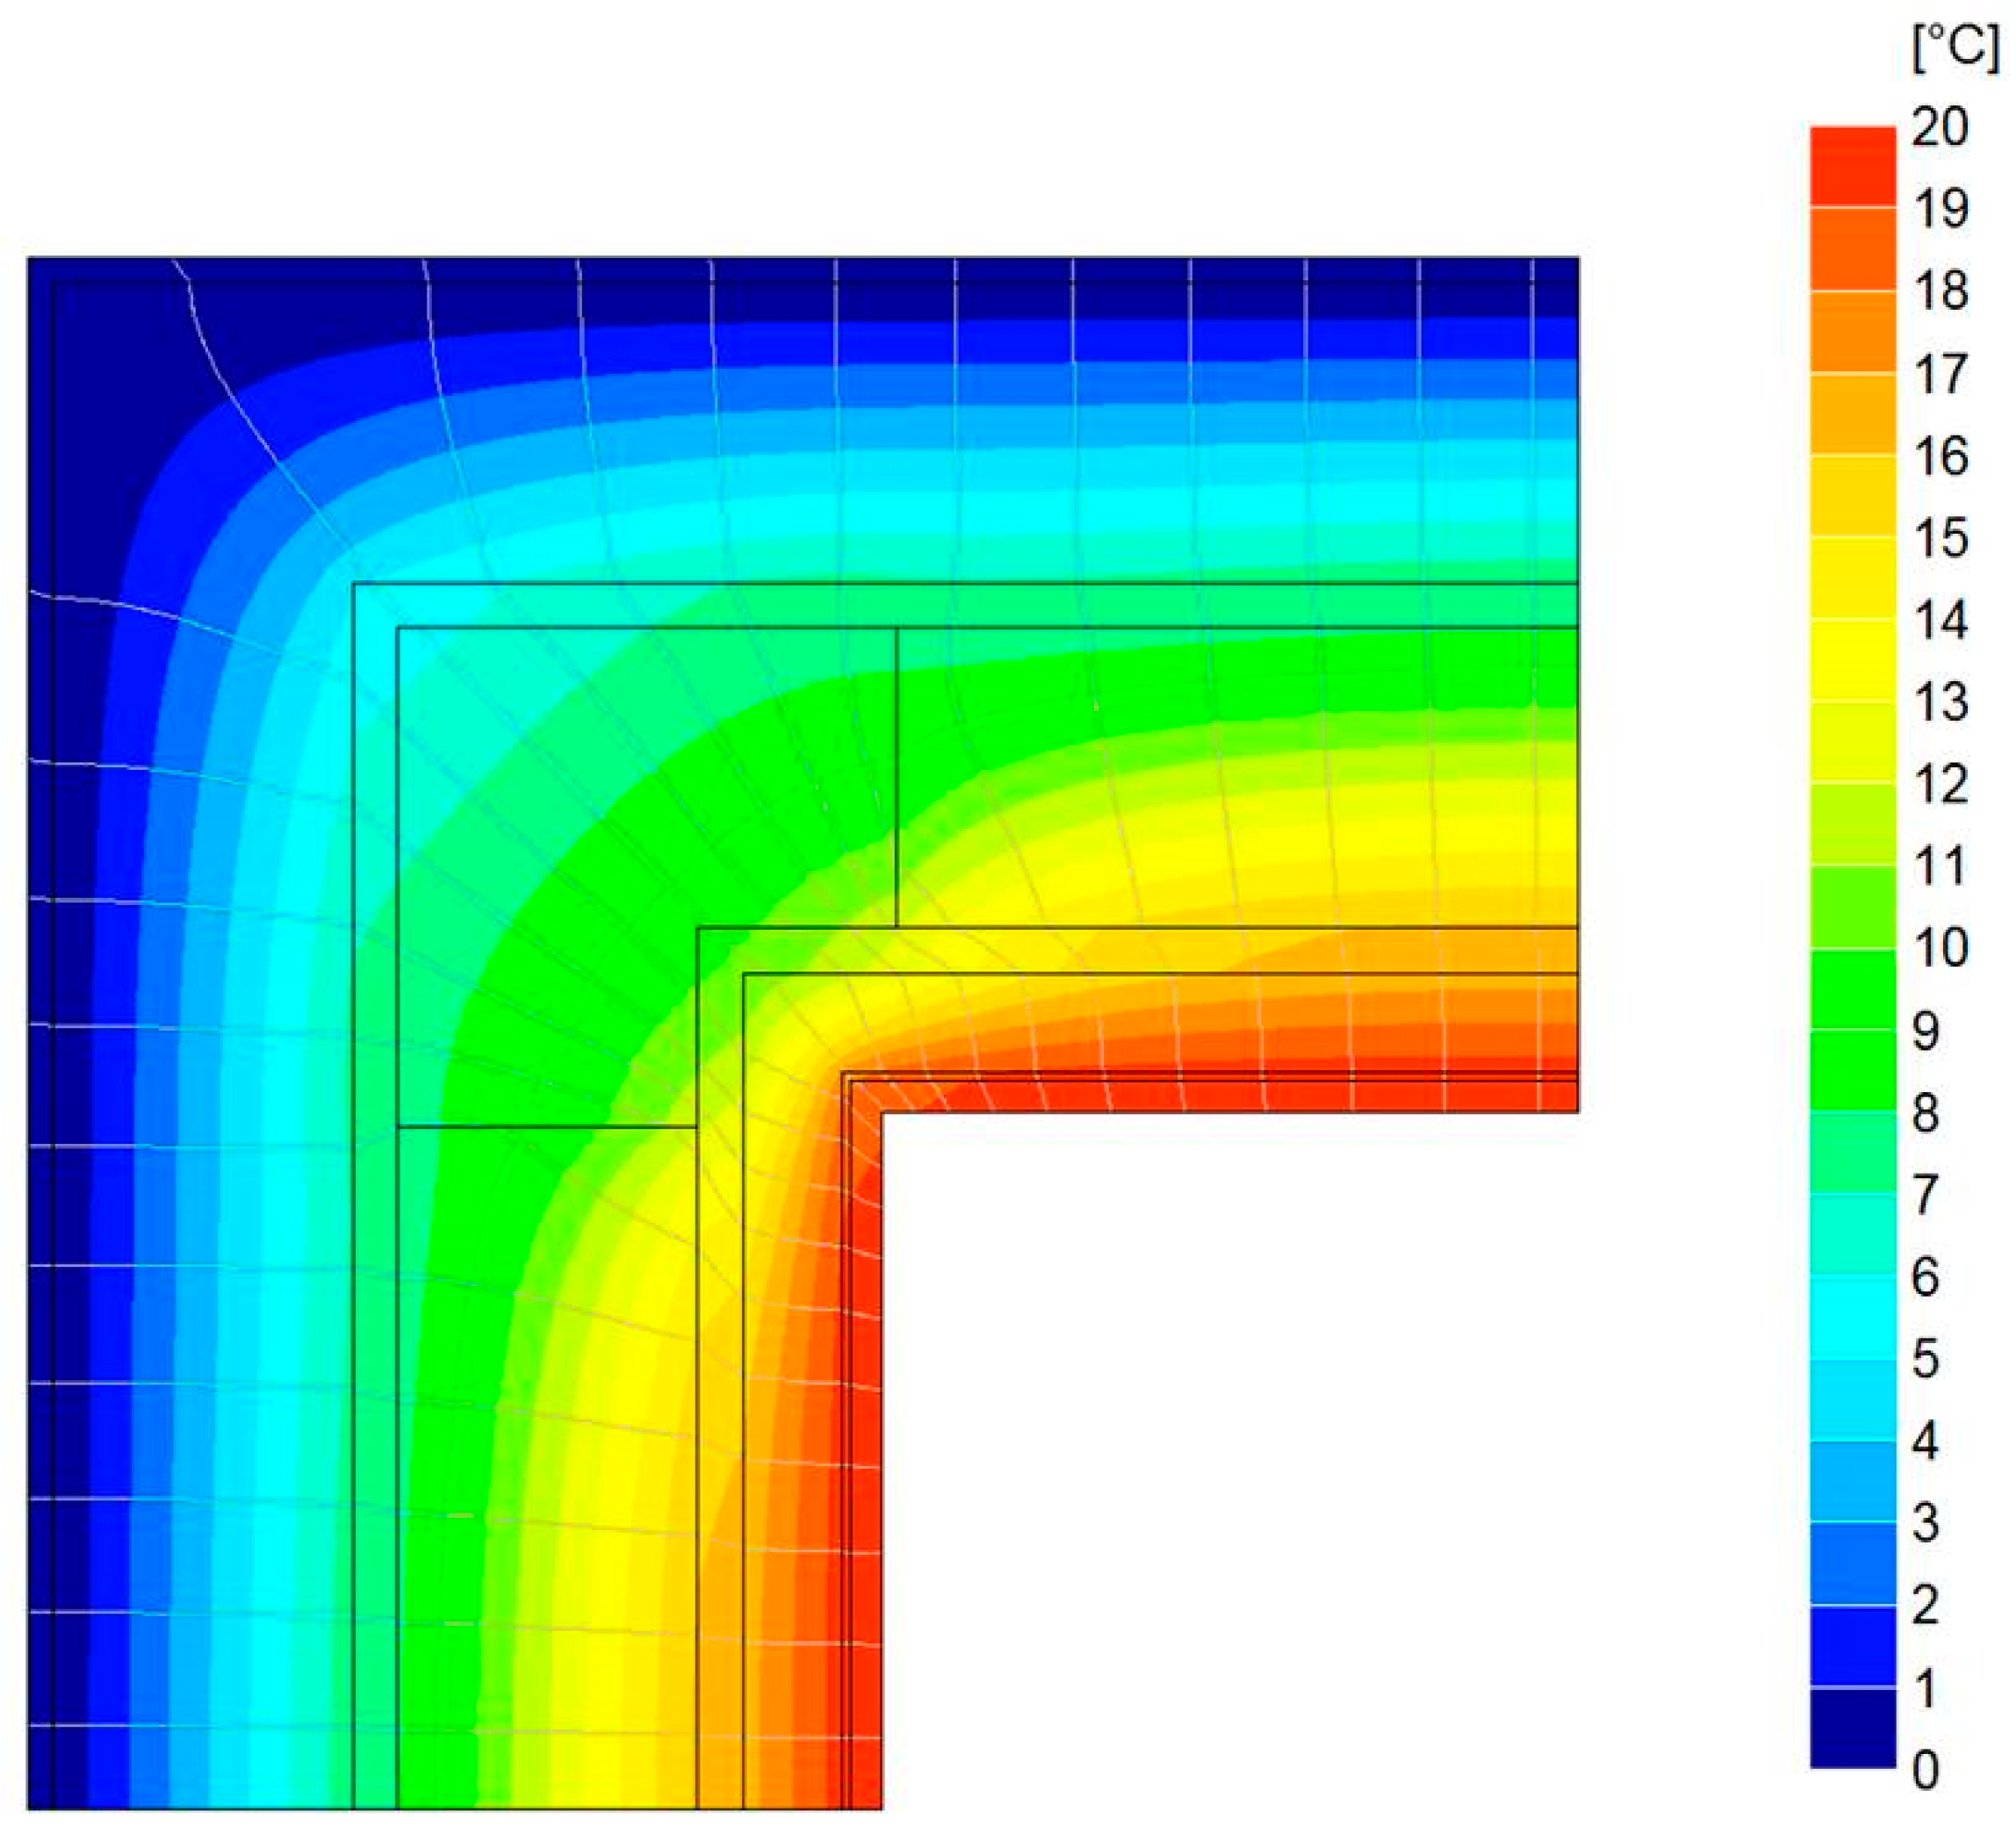 Energy Modeling also Passive Design Elements In Action For Better Or For Worse further Shading furthermore Events furthermore Sun path. on architectural shading devices and cooling